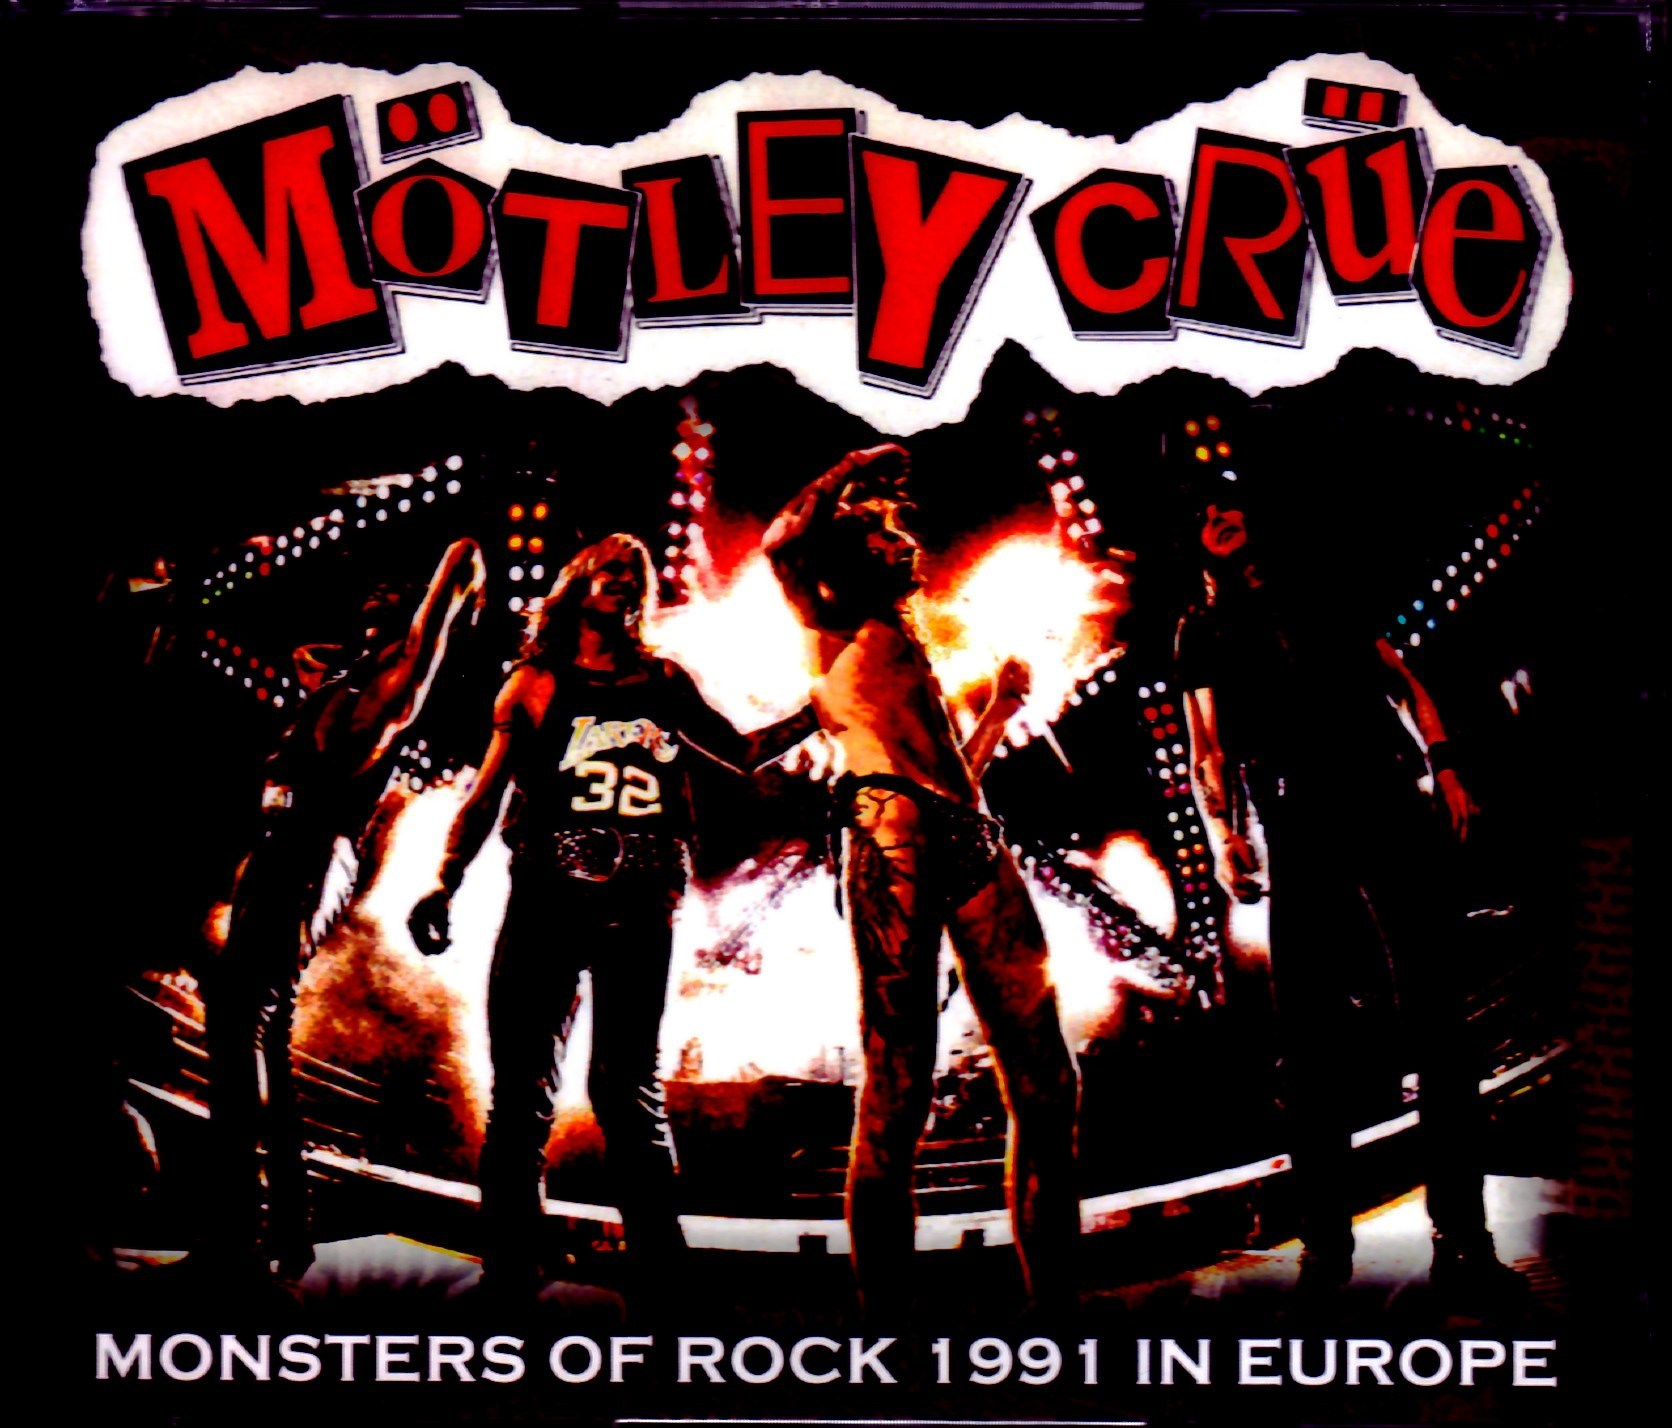 Motley Crue モトリー・クルー/Europe Tour Collection 1991